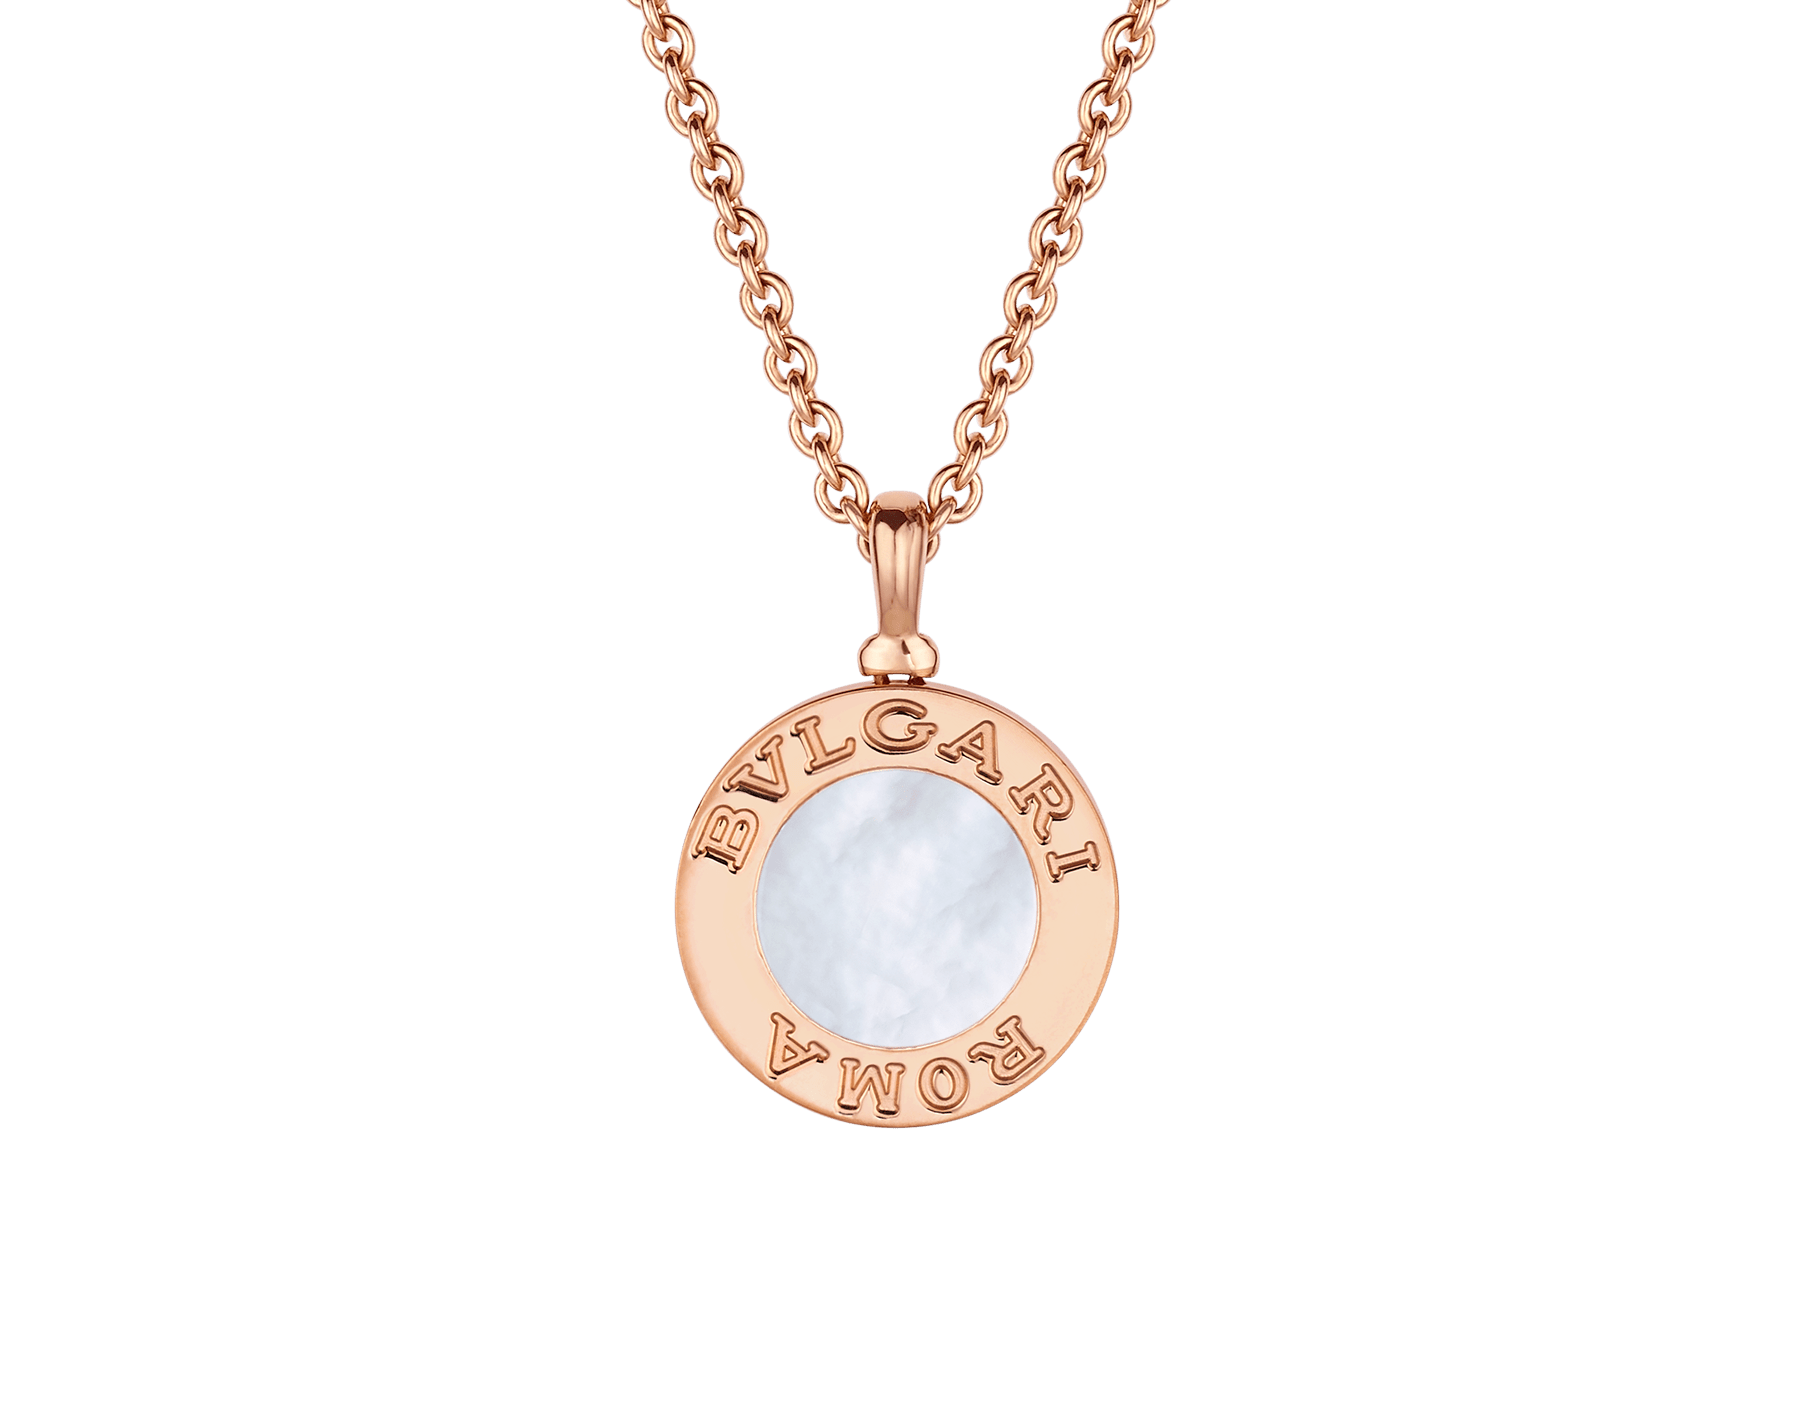 BVLGARI BVLGARI 18 kt rose gold chain and 18 kt rose gold pendant set with mother-of-pearl insert and pavé diamonds (0.34 ct) 358375 image 4